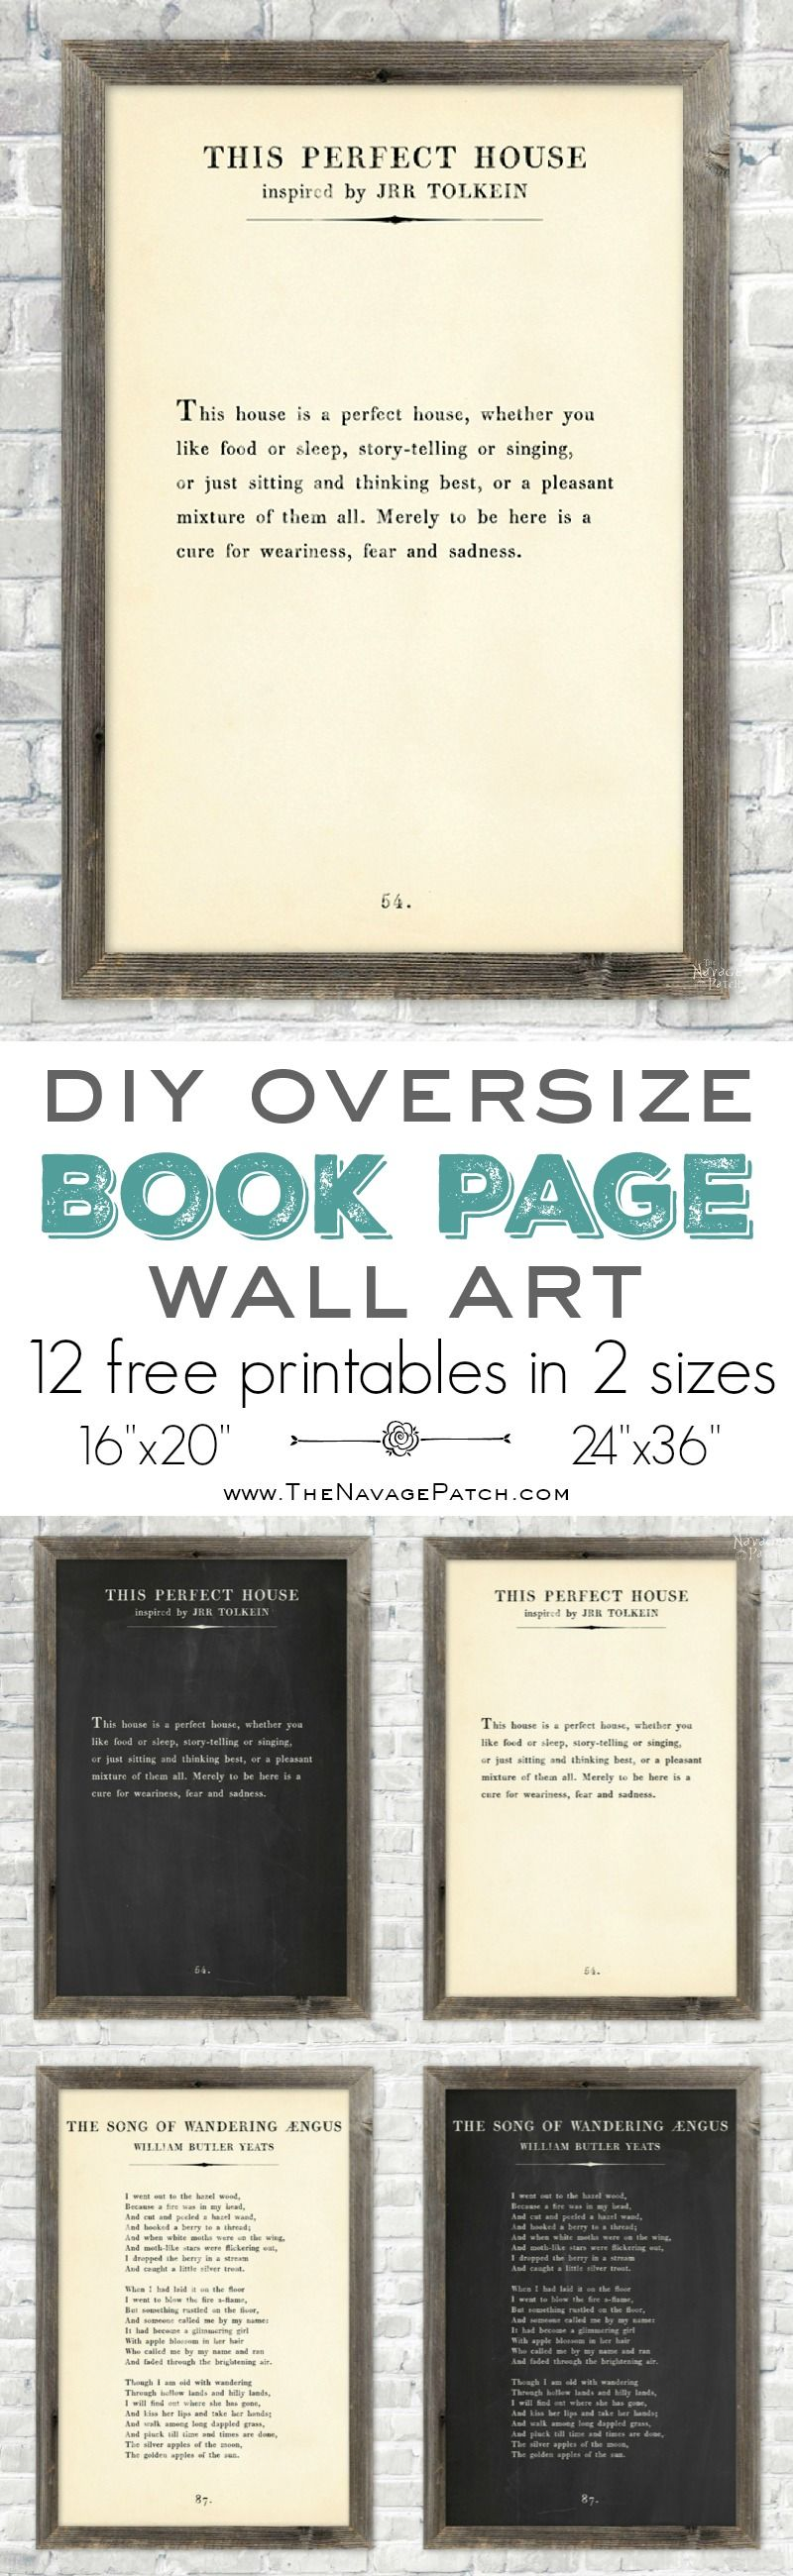 Oversize Book Page Wall Art {12 Free Printables} | 12 free printable high-resolution book page wall art | Amazing set of free printable book page quotes | How to make your own oversized farmhouse style book page quote art | Engineering print vs poster print | Step by step tutorial on budget friendly oversized wall art | Free downloadable book page wall art | Easy DIY wall decoration | TheNavagePatch.com